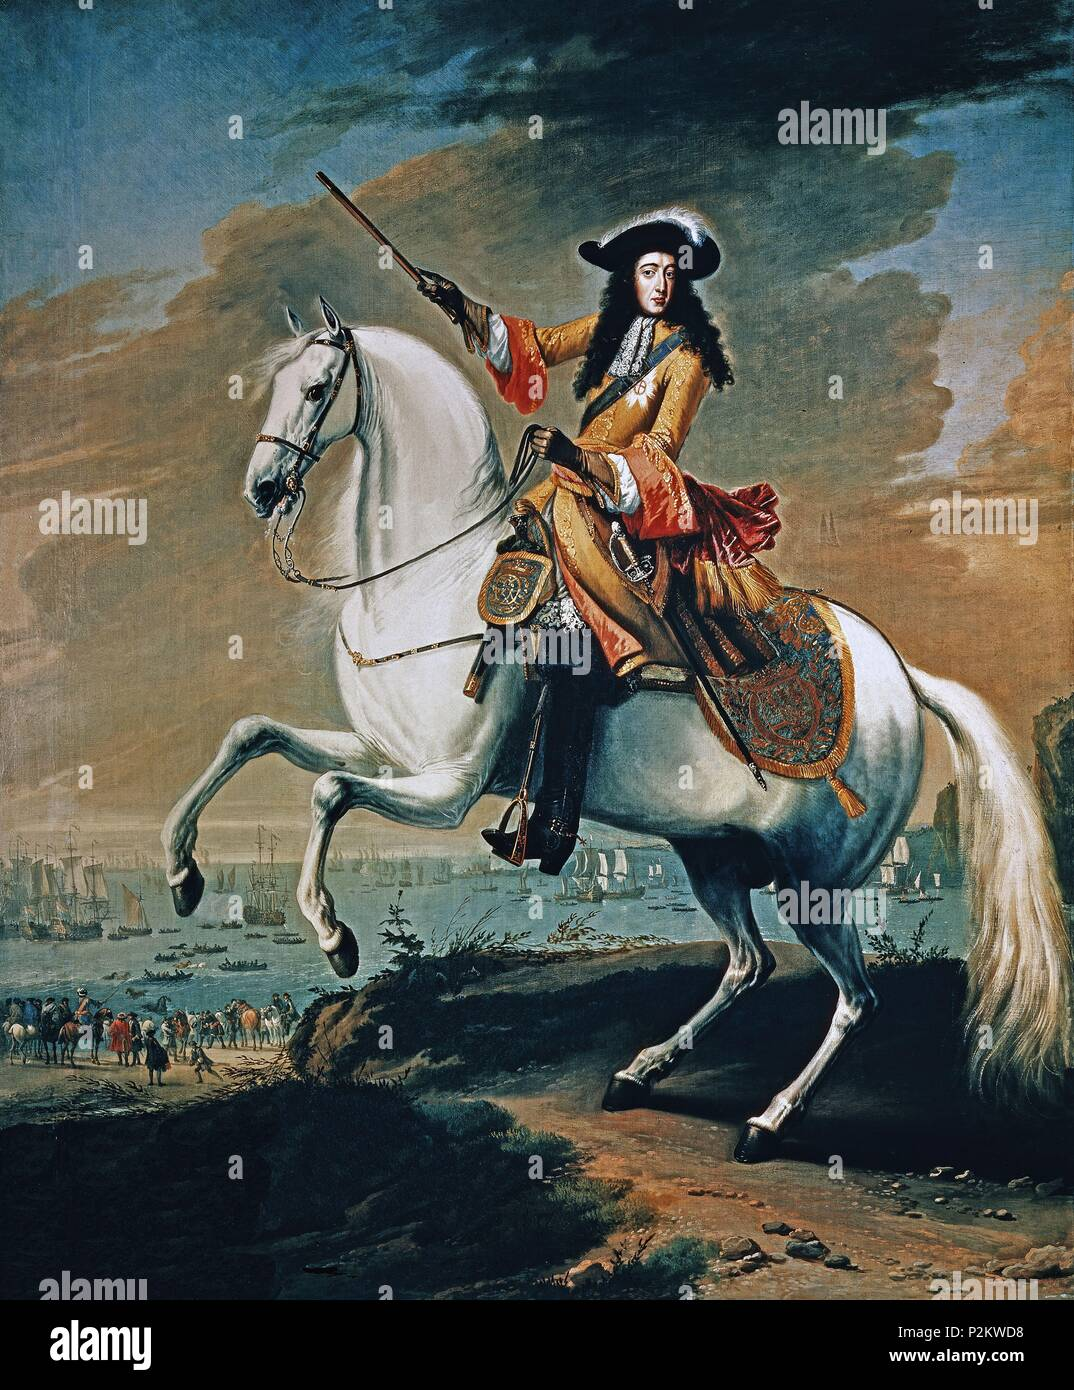 'Equestrian portrait of William III of England', 1688, Oil on canvas. Author: Jan Wyck (c. 1644-1702). Location: NATIONAL MARITIME MUSEUM, GREENWICH, ENGLAND. - Stock Image